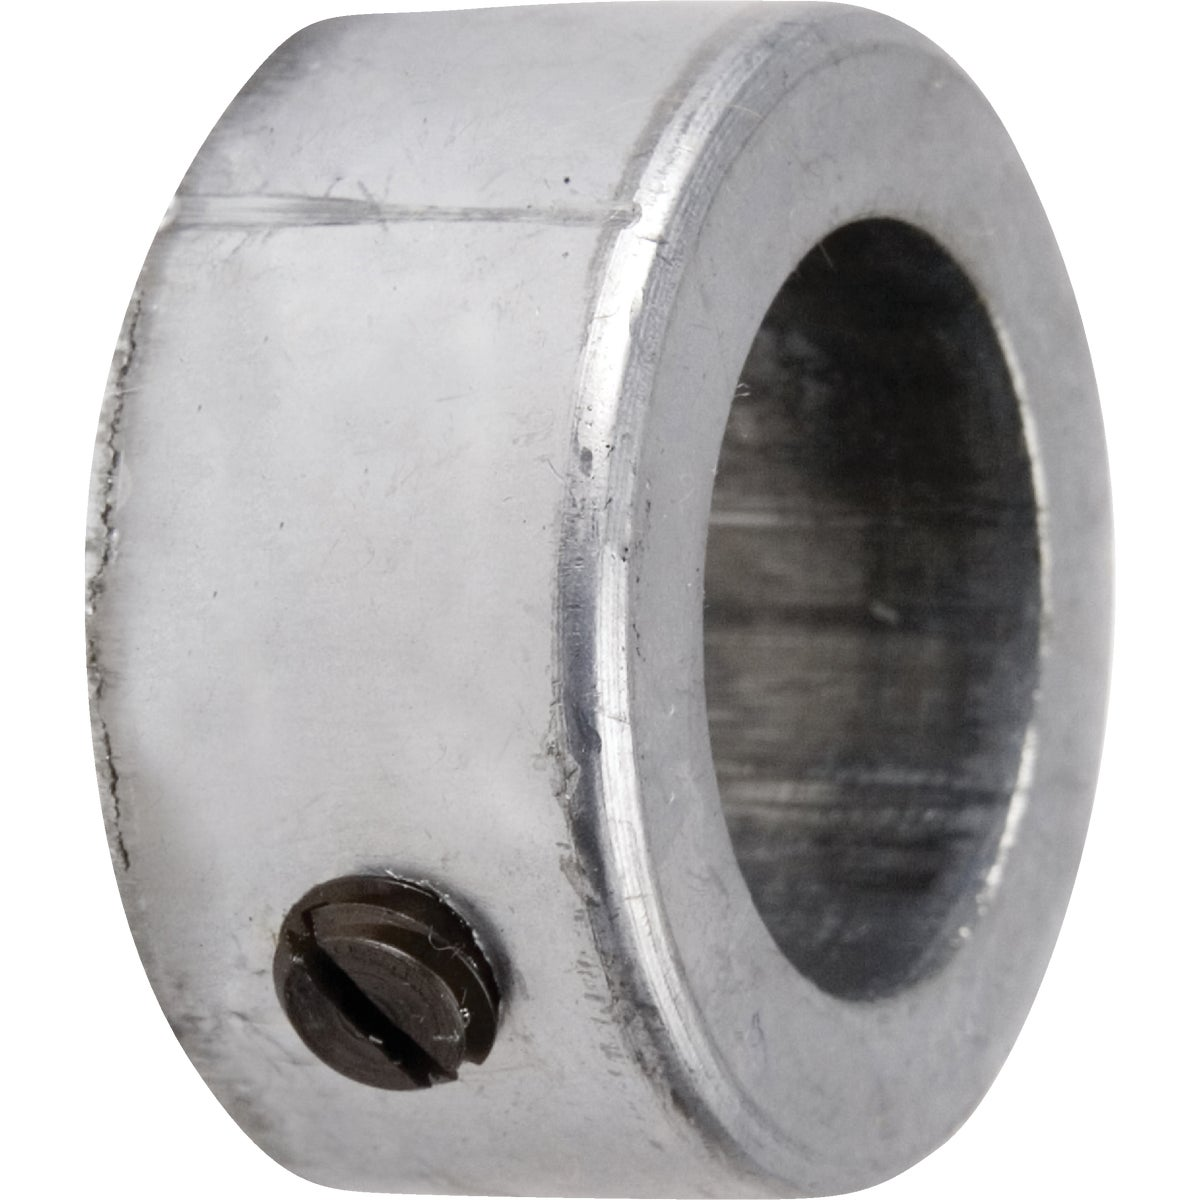 "1/2"" SHAFT COLLAR"